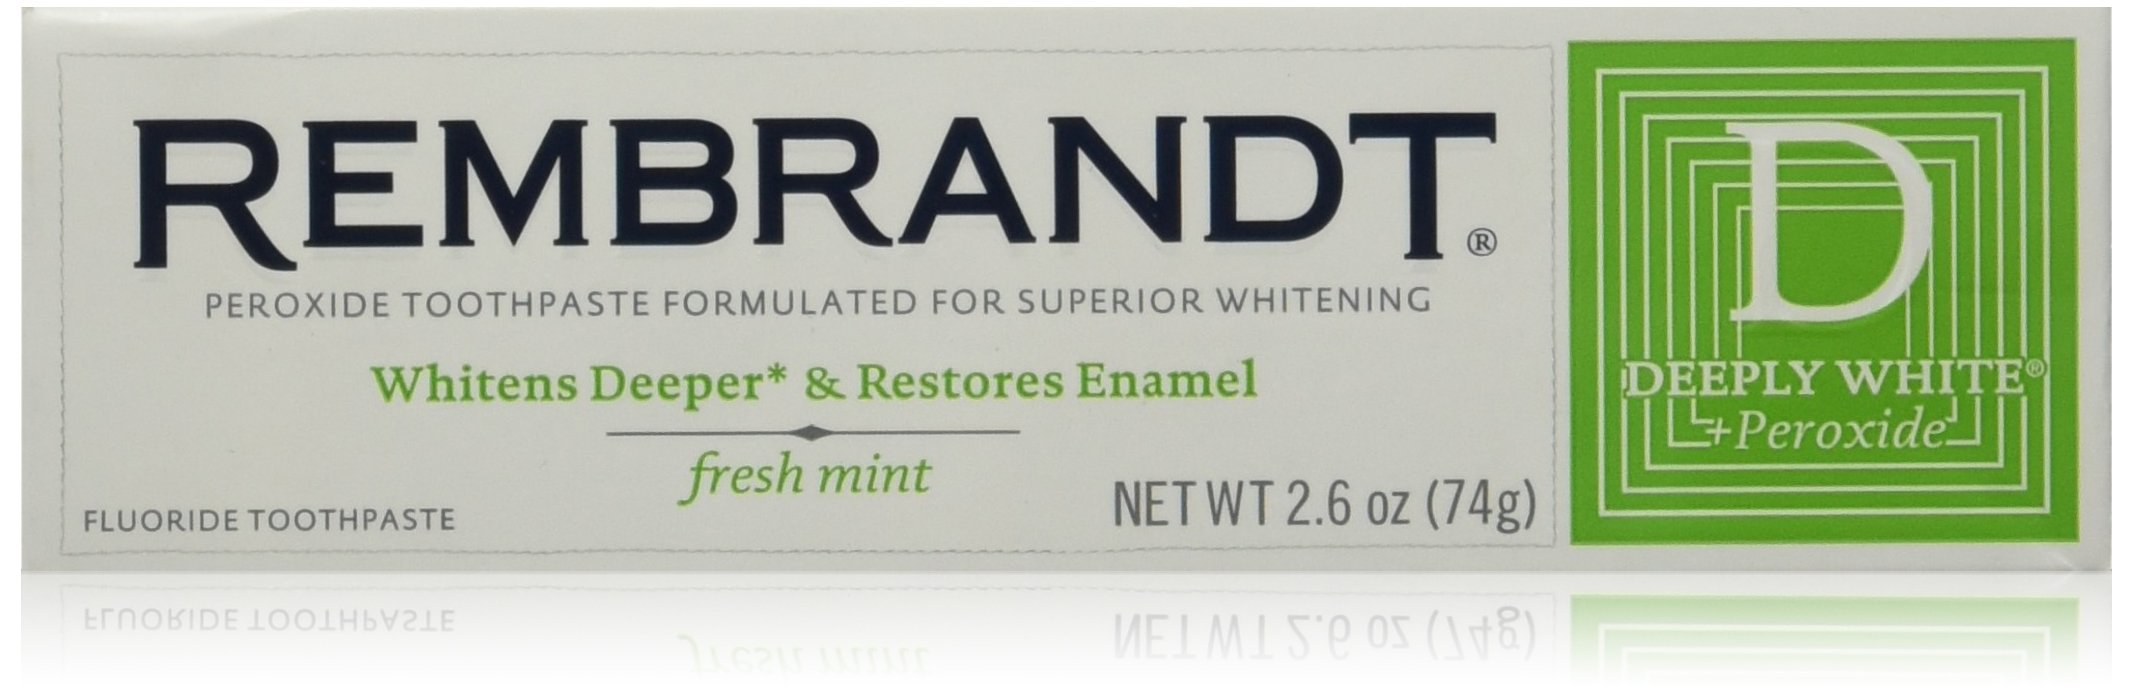 Rembrandt Plus Deeply White + Peroxide Whitening Toothpaste with Fluoride, Winter Mint 2.6oz(74 g)